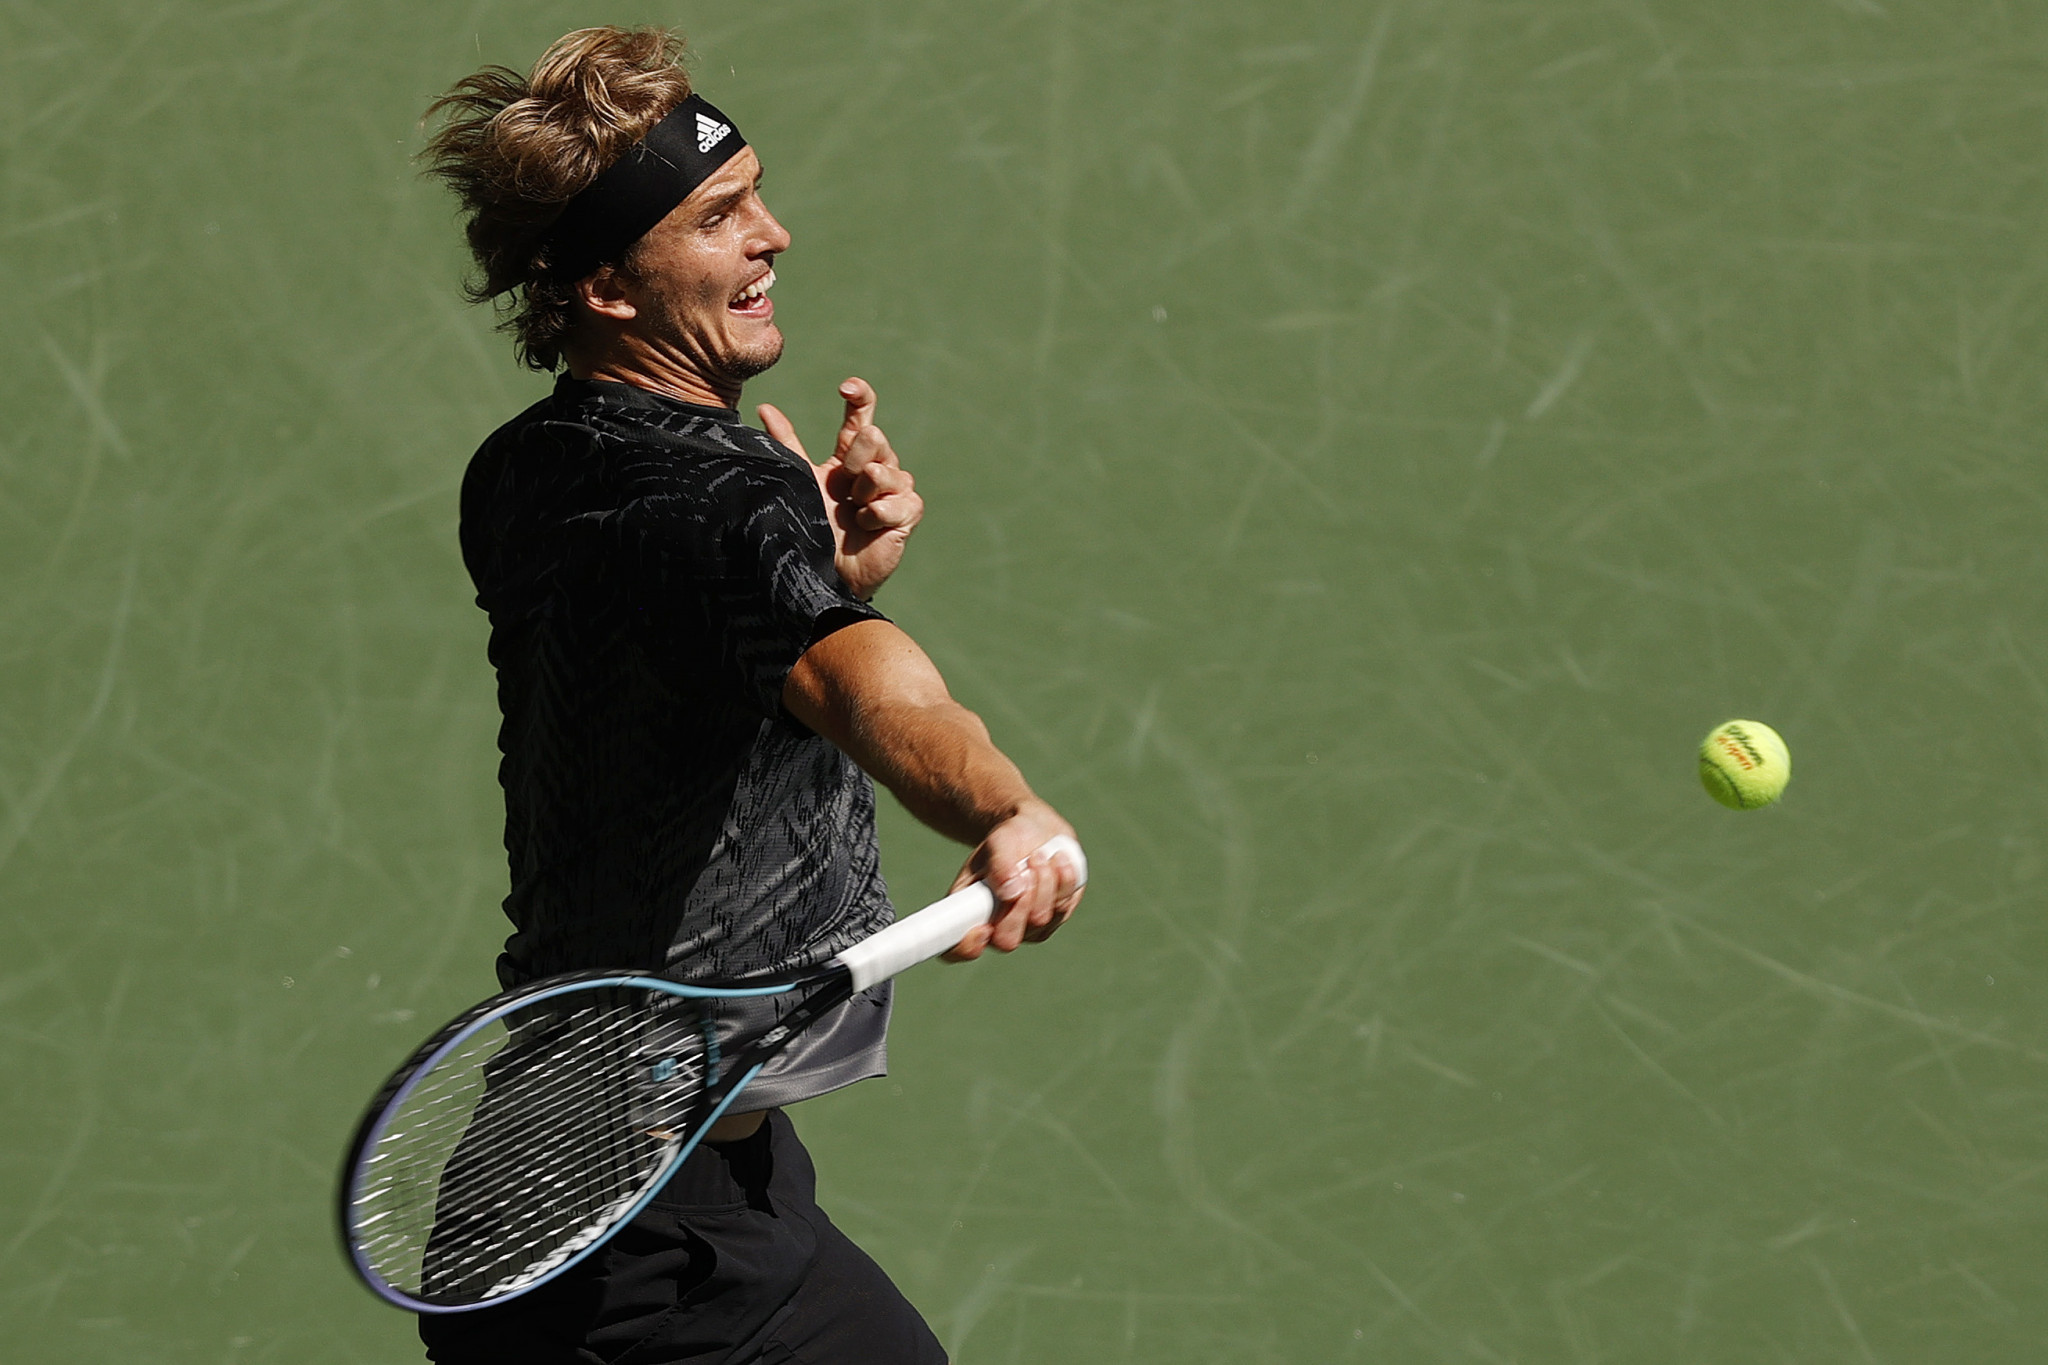 Fourth seed Alex Zverev defeated Jannik Sinner in straight sets to reach the last eight in New York ©Getty Images